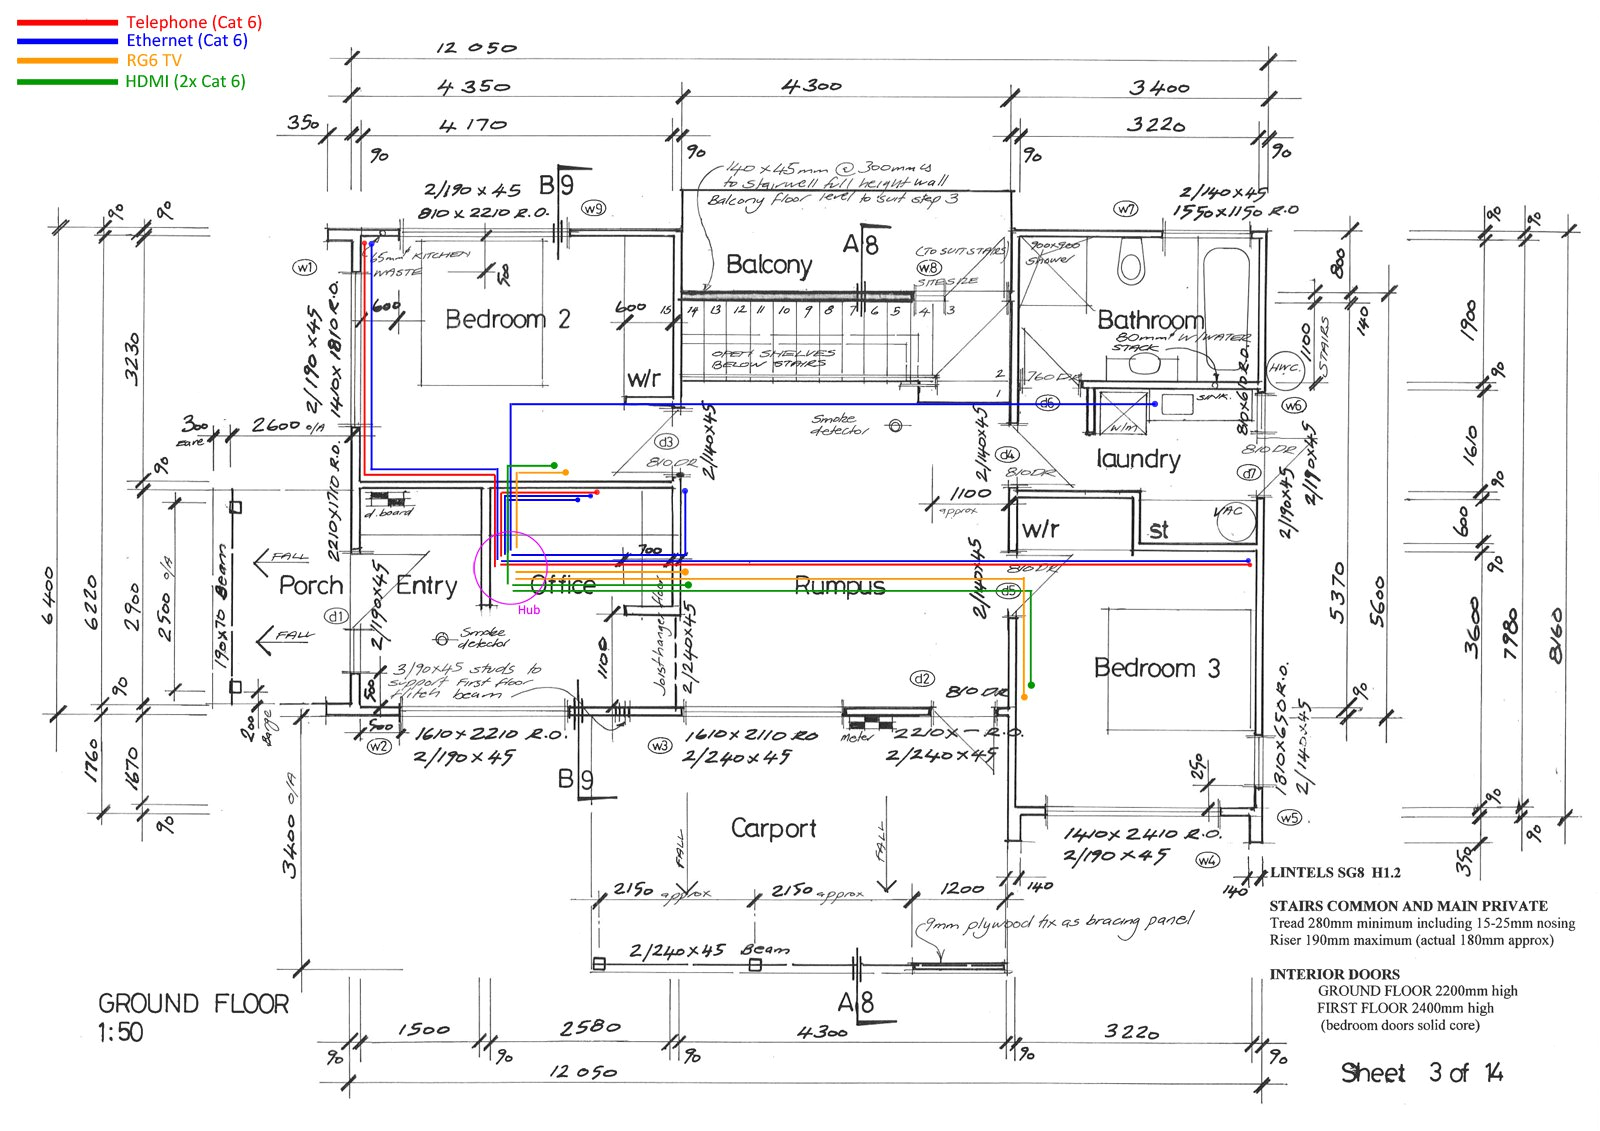 wiring a house with hdmi wiring diagram used wire house with hdmi cable